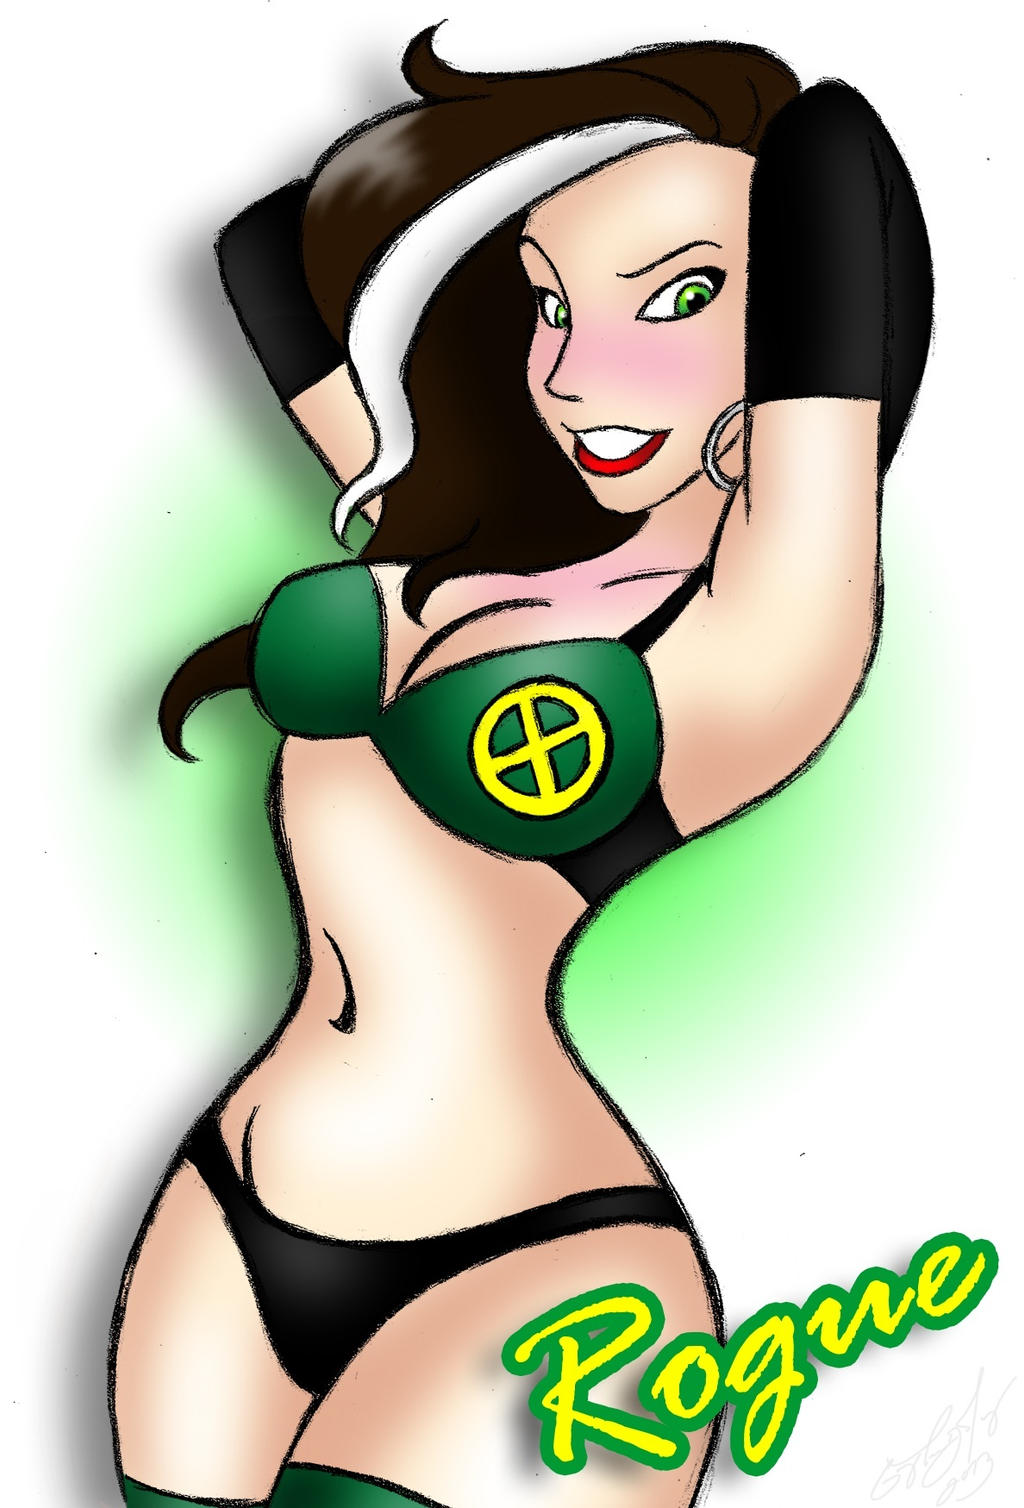 Rogue Pin-Up by DarthGuyford